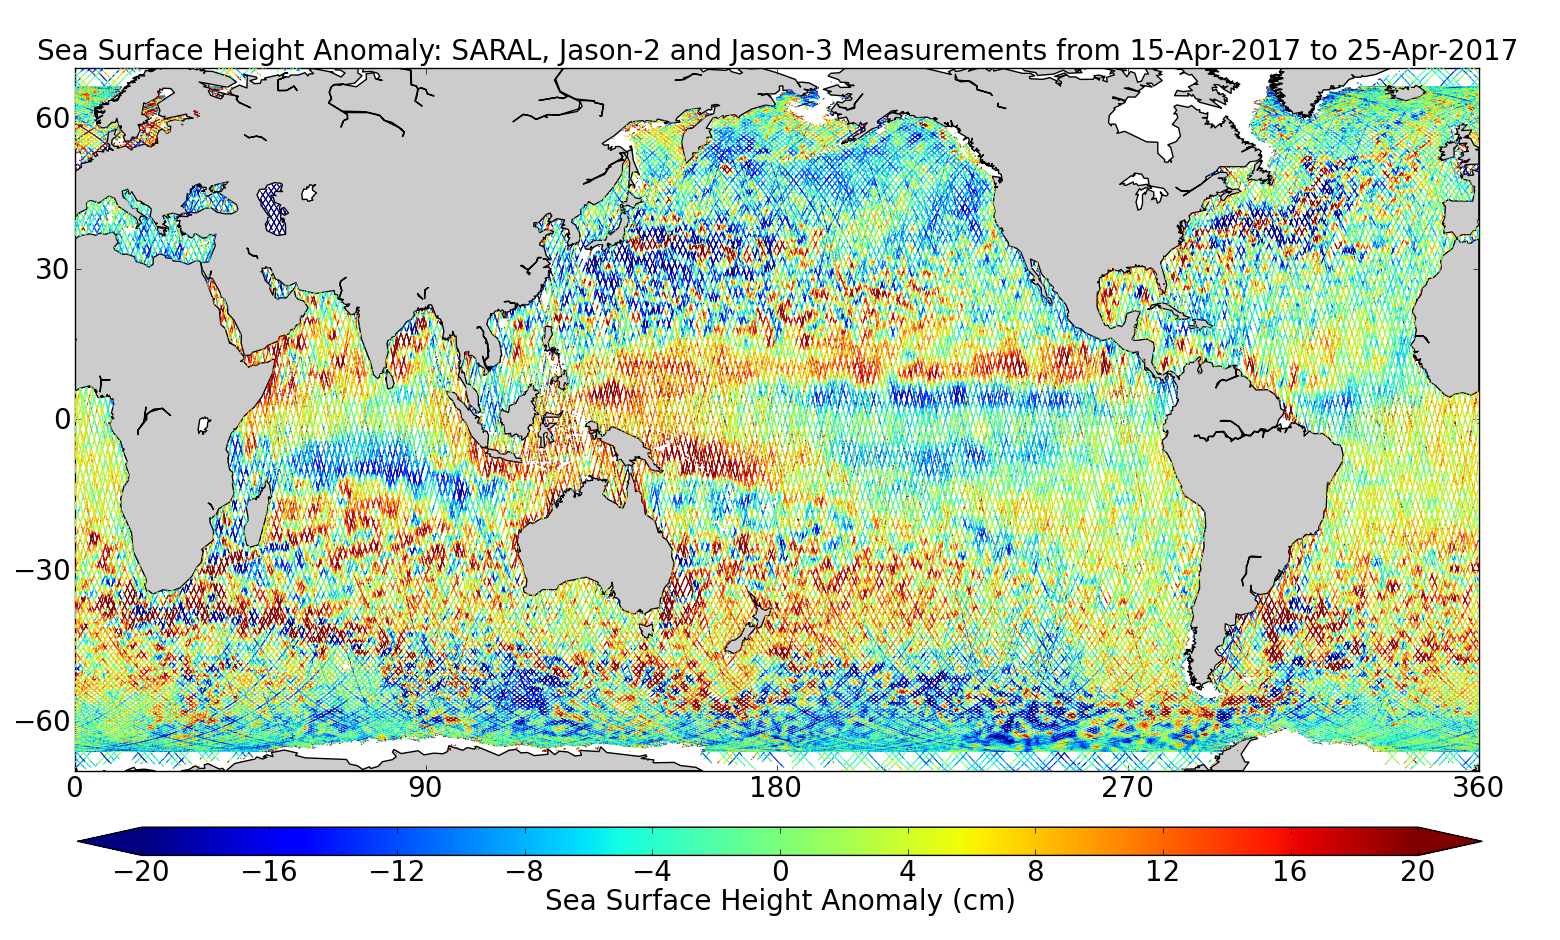 Sea Surface Height Anomaly: SARAL, Jason-2 and Jason-3 Measurements from 15-Apr-2017 to 25-Apr-2017